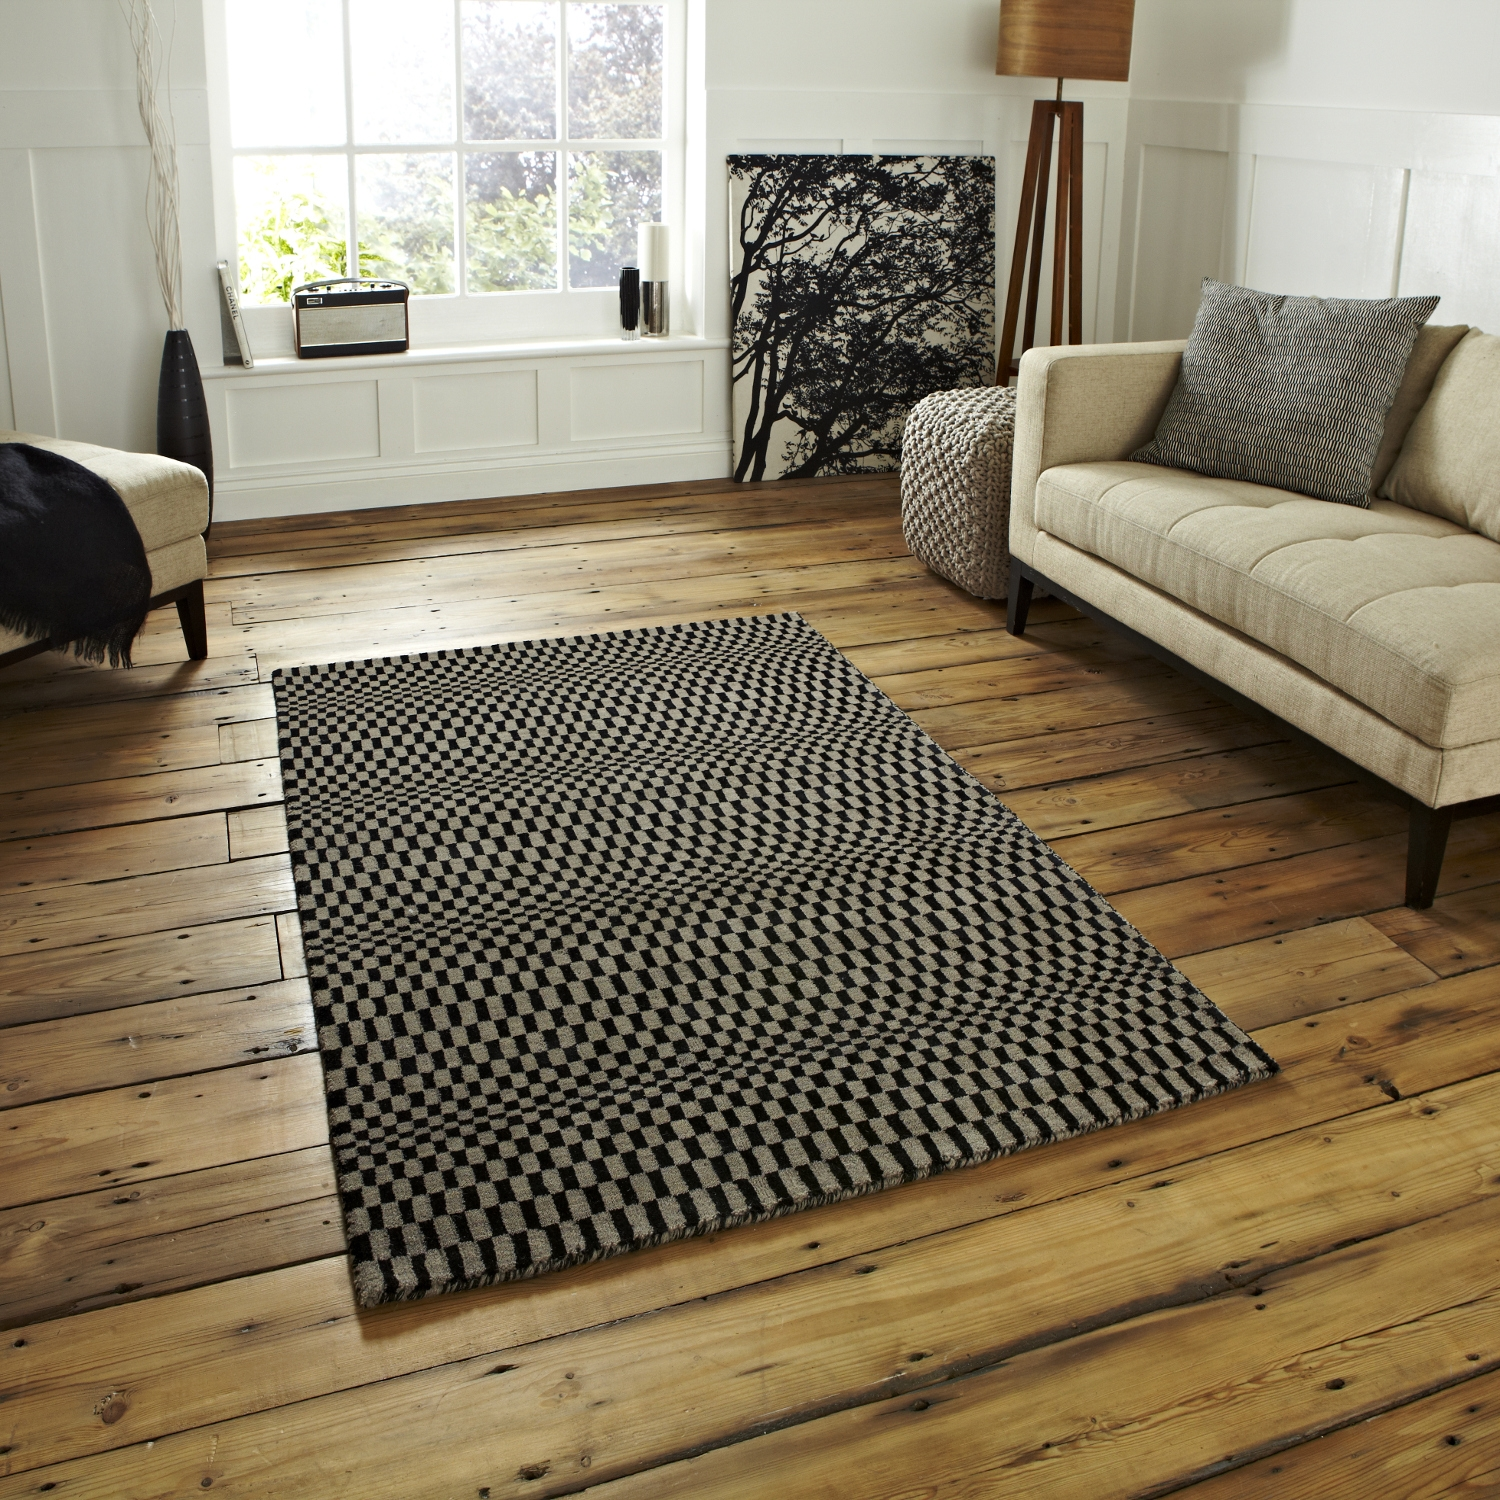 Living Room 15 Sonic Sn 01 Wave Effect Optical Illusion Rug Inside Large Wool Rugs (Image 9 of 15)